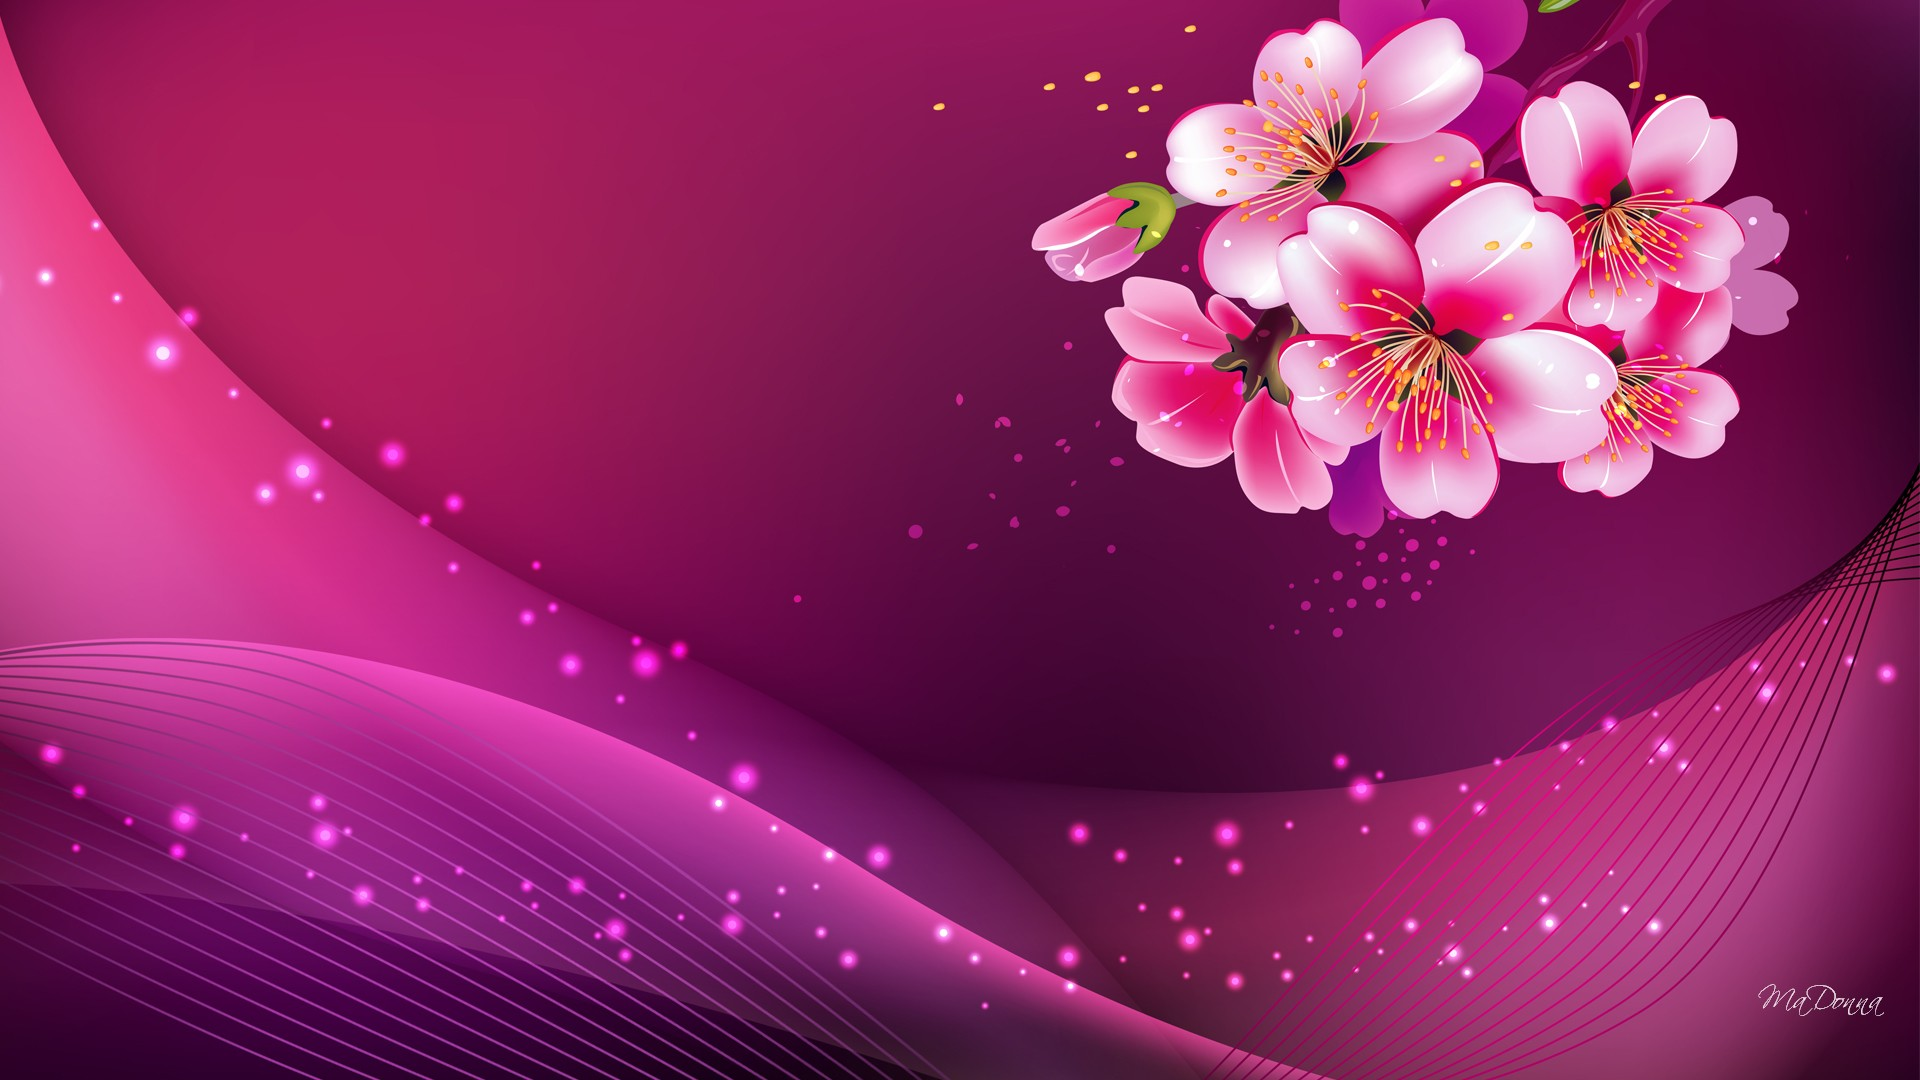 35 High Definition Pink Wallpapers Backgrounds For Free